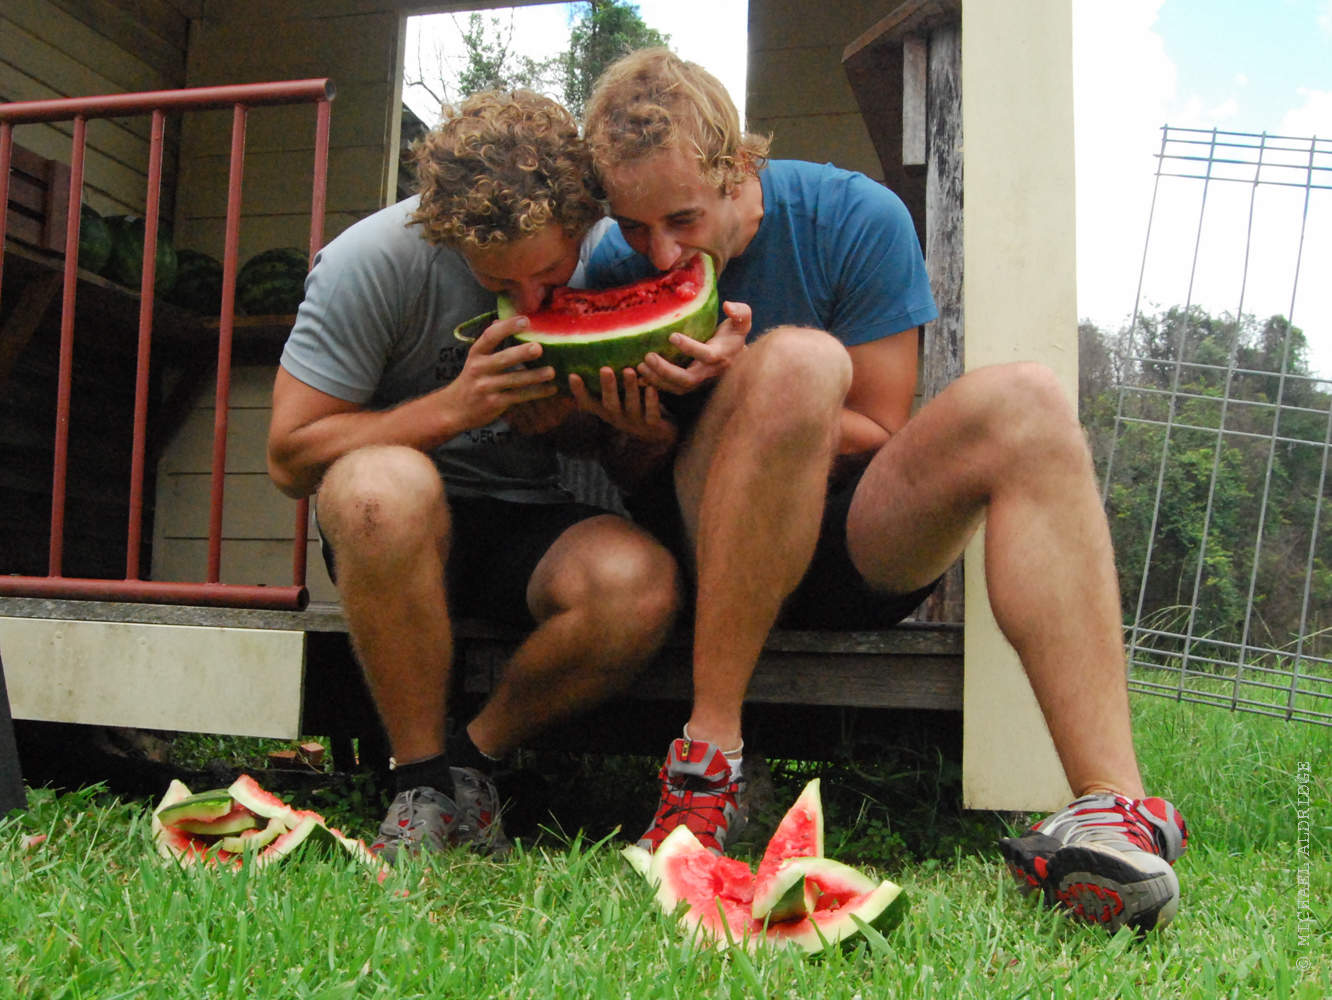 Watermelon Feast at the end of a long bike ride